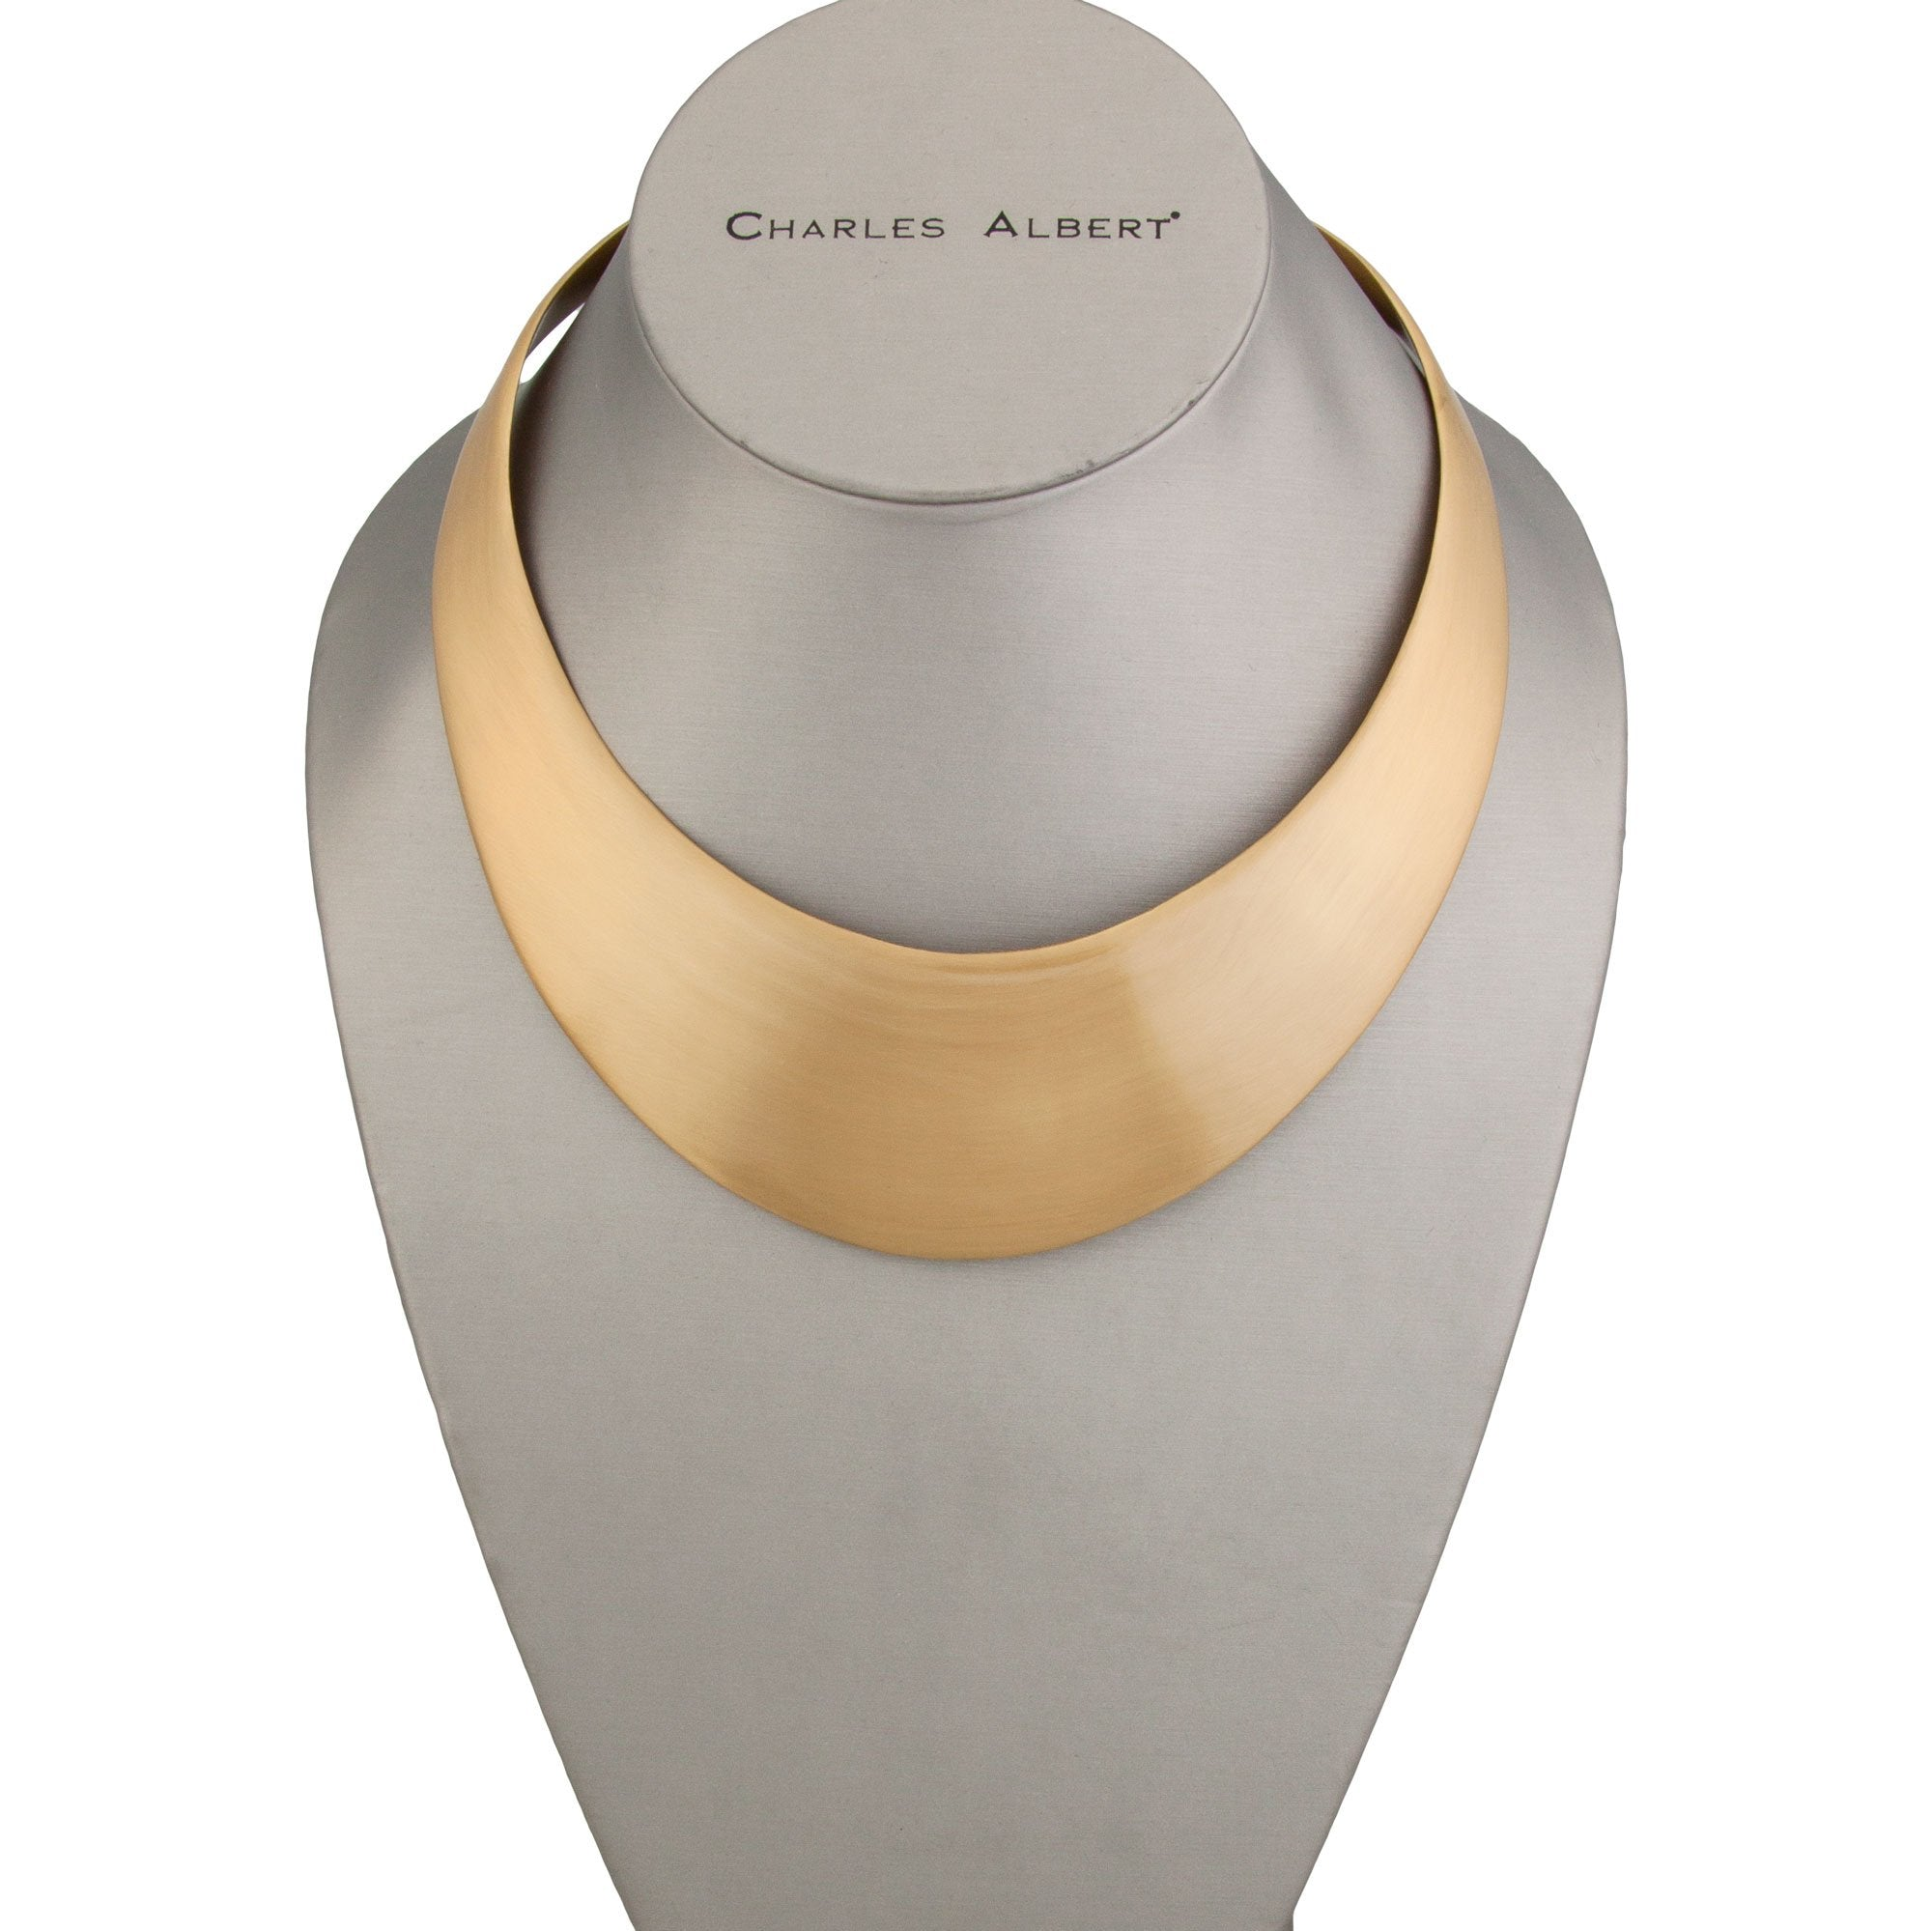 Alchemia Matte Wide Collar | Charles Albert Jewelry